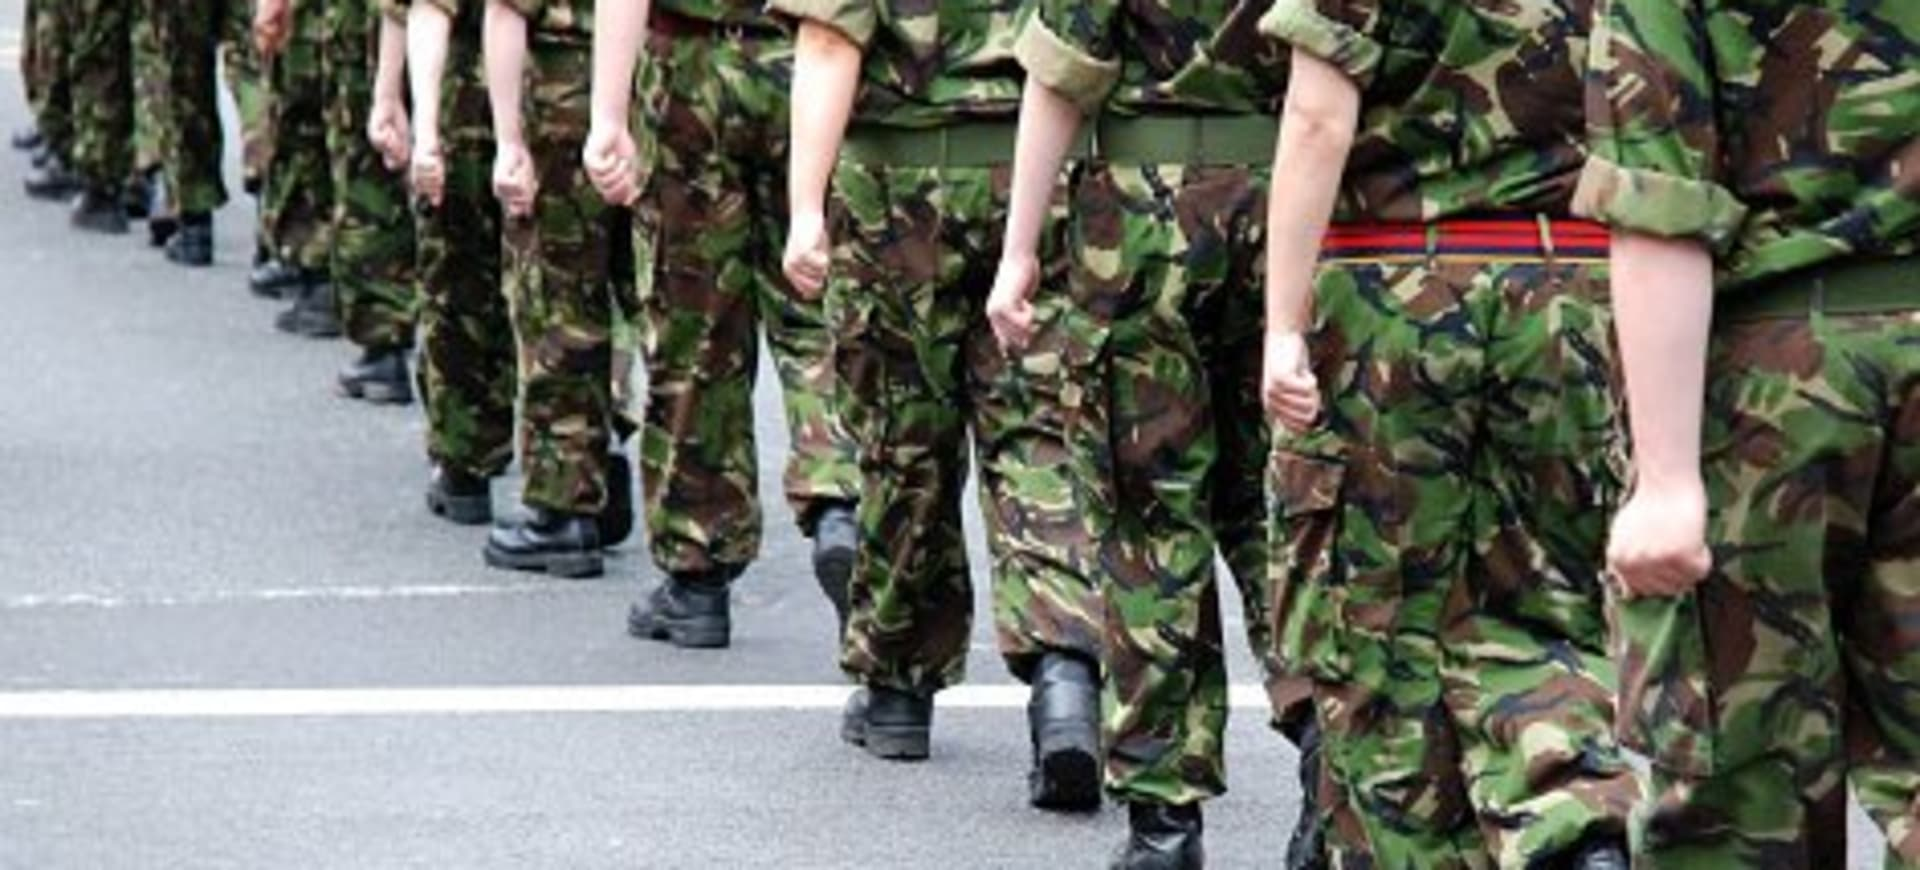 Hundreds of armed forces veterans left homeless and living on our streets